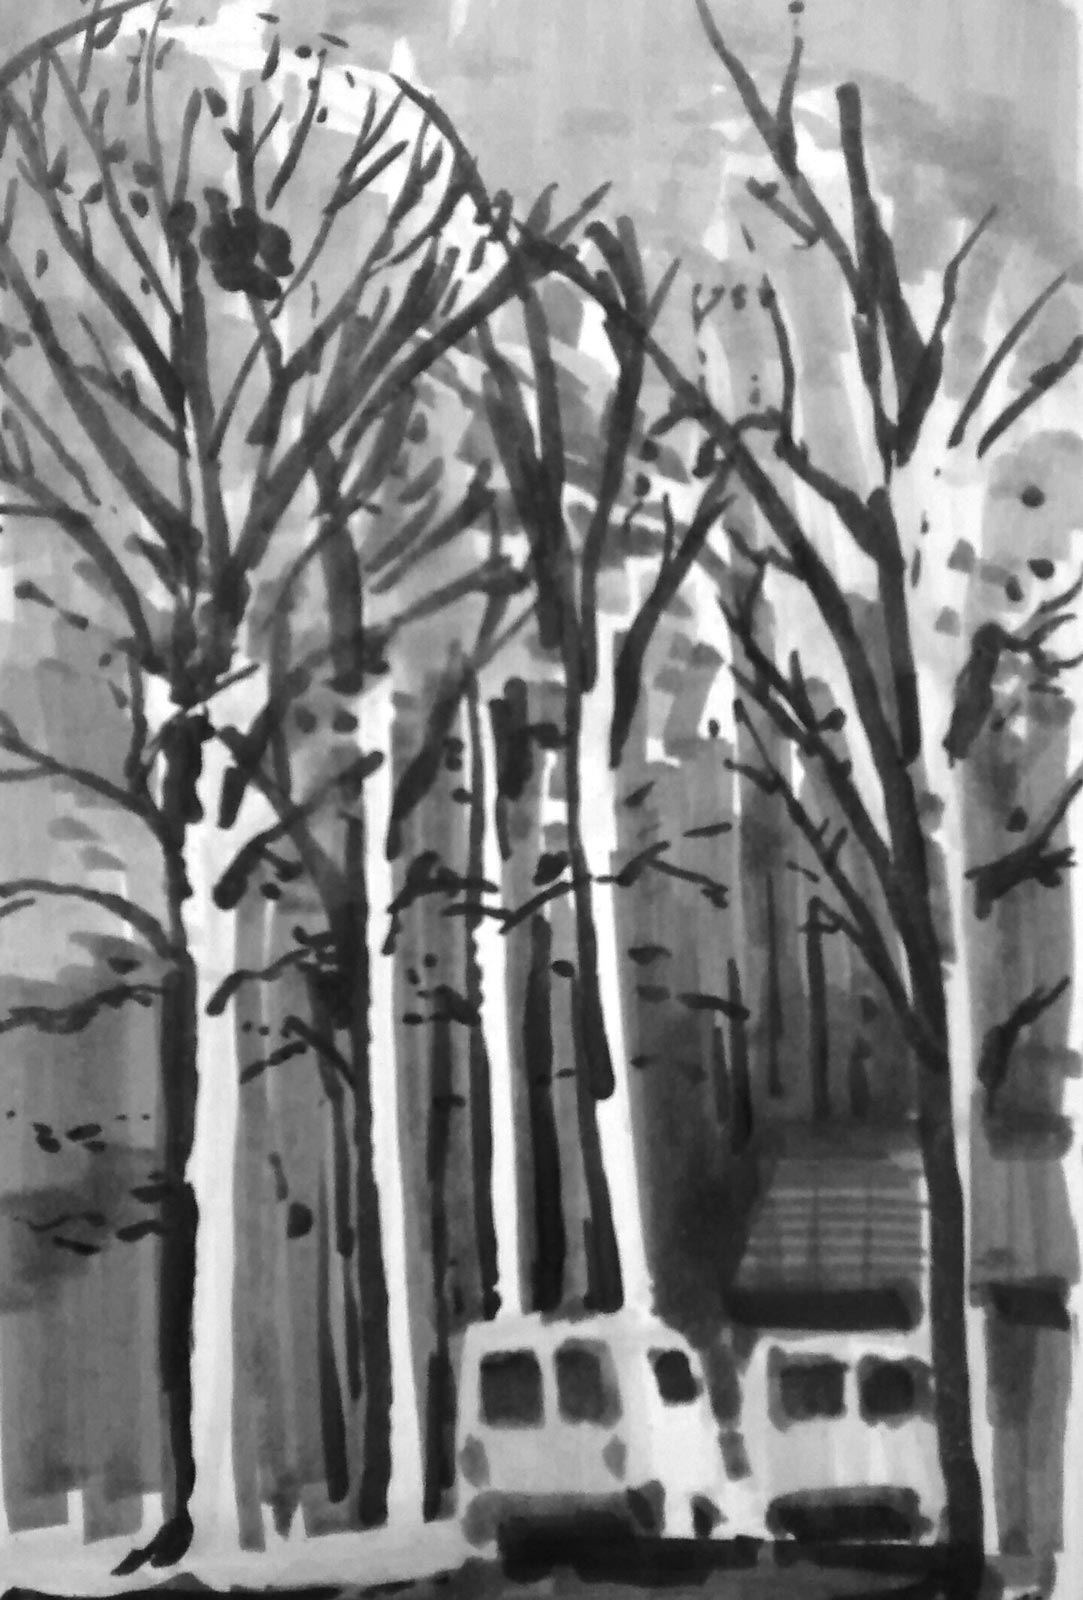 A grey and black marker sketch of two work vans underneath large trees.